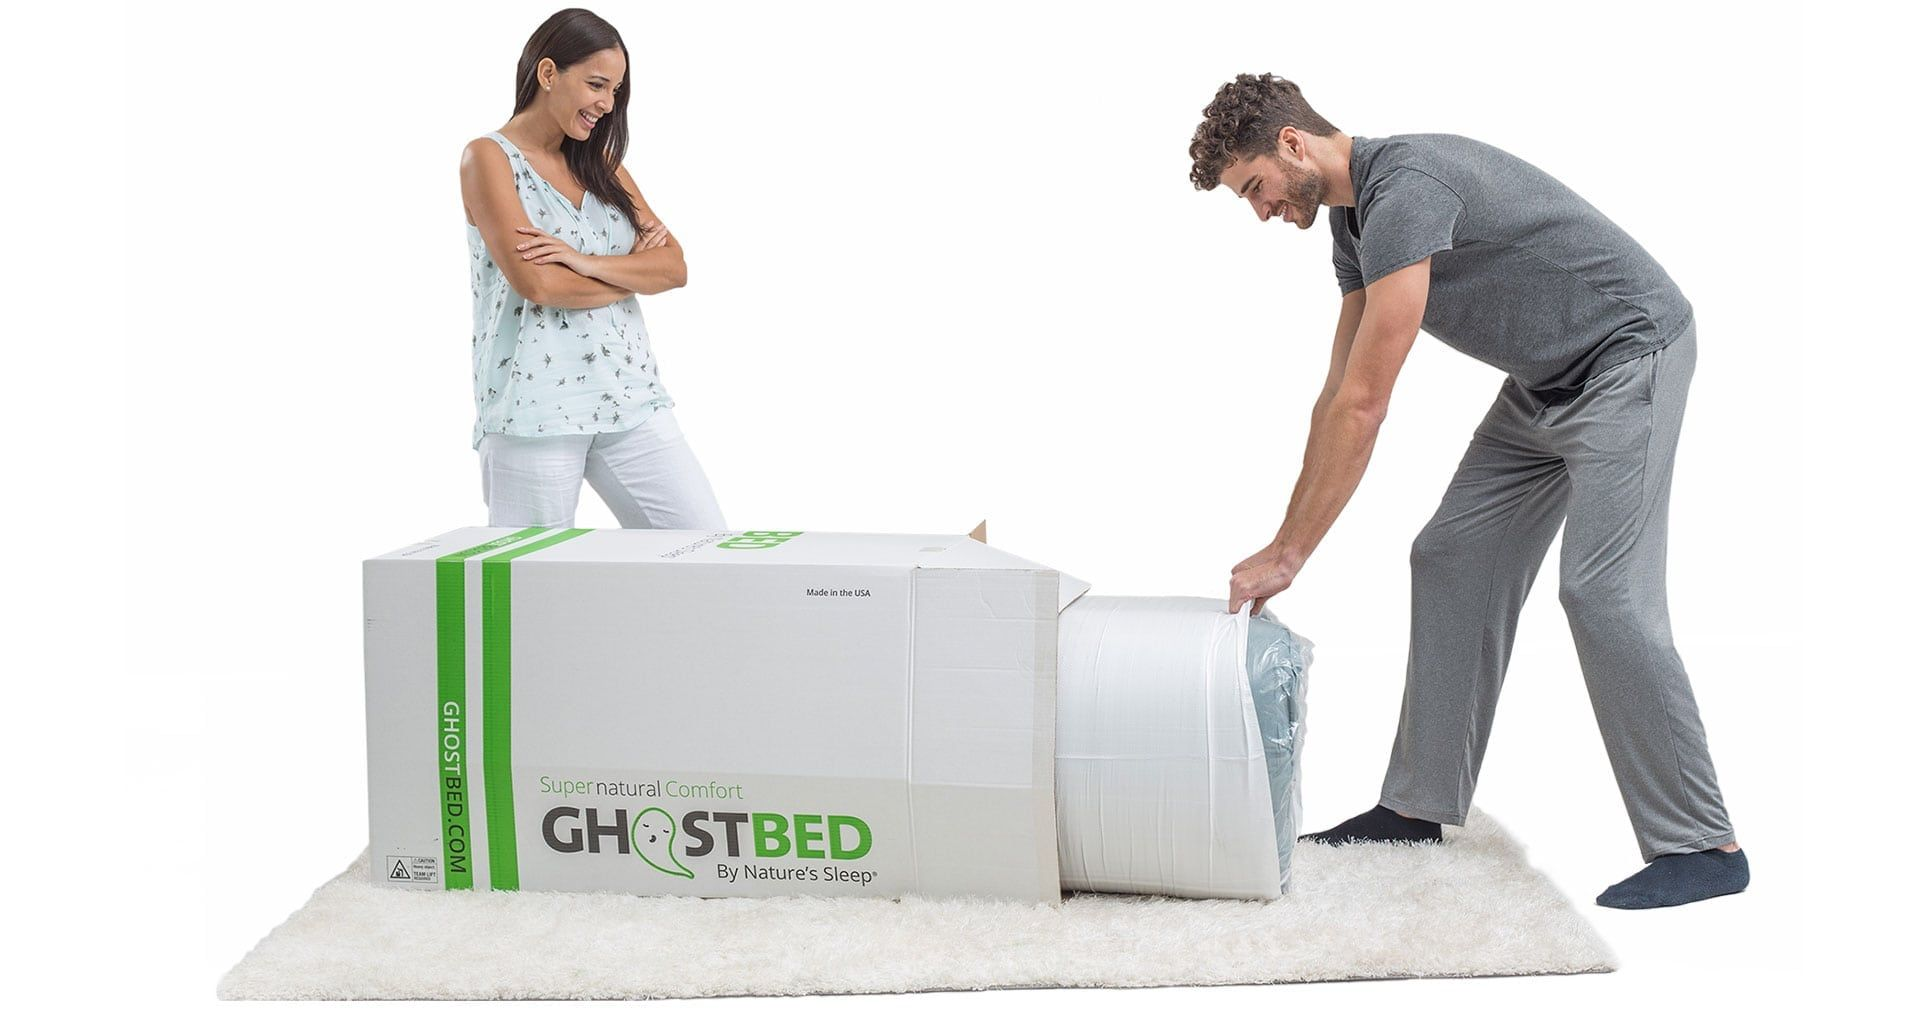 Shop & Compare All 3 GhostBed Mattresses 25,000+ Reviews